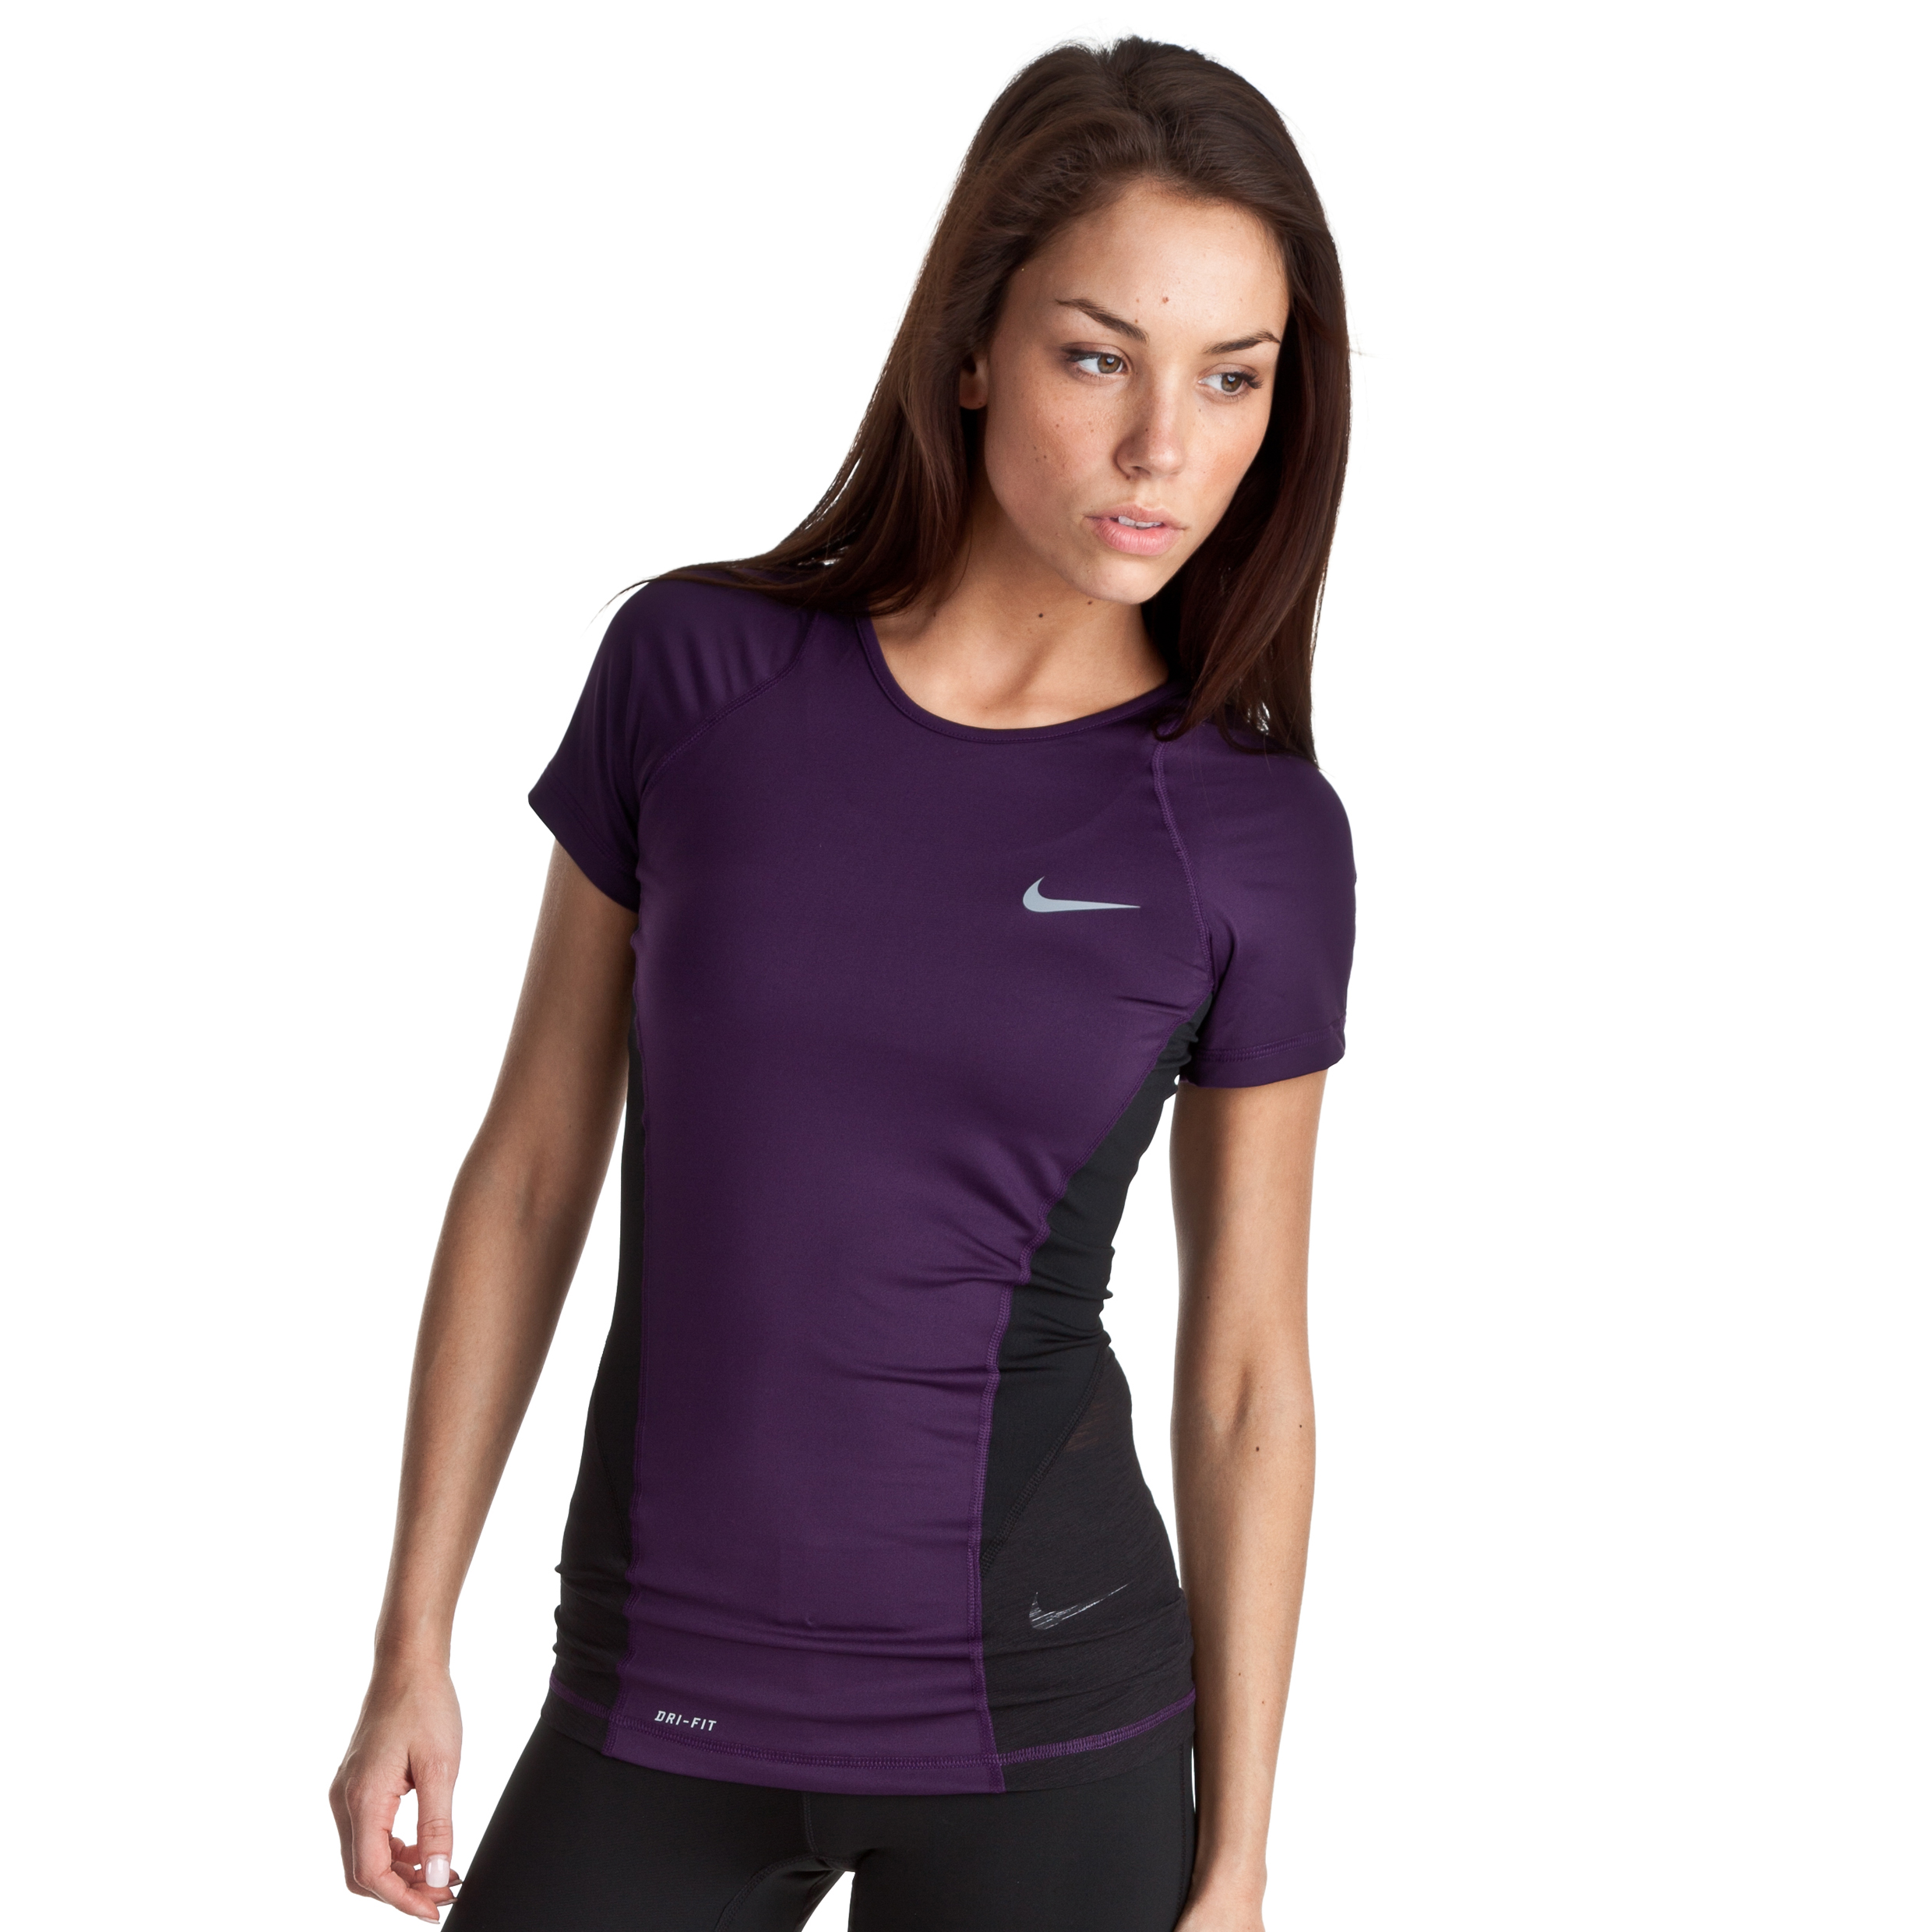 Nike Pro Hypercool Flash Short Sleeve Tee - Grand Purple/Anthracite/Anthracite - Womens